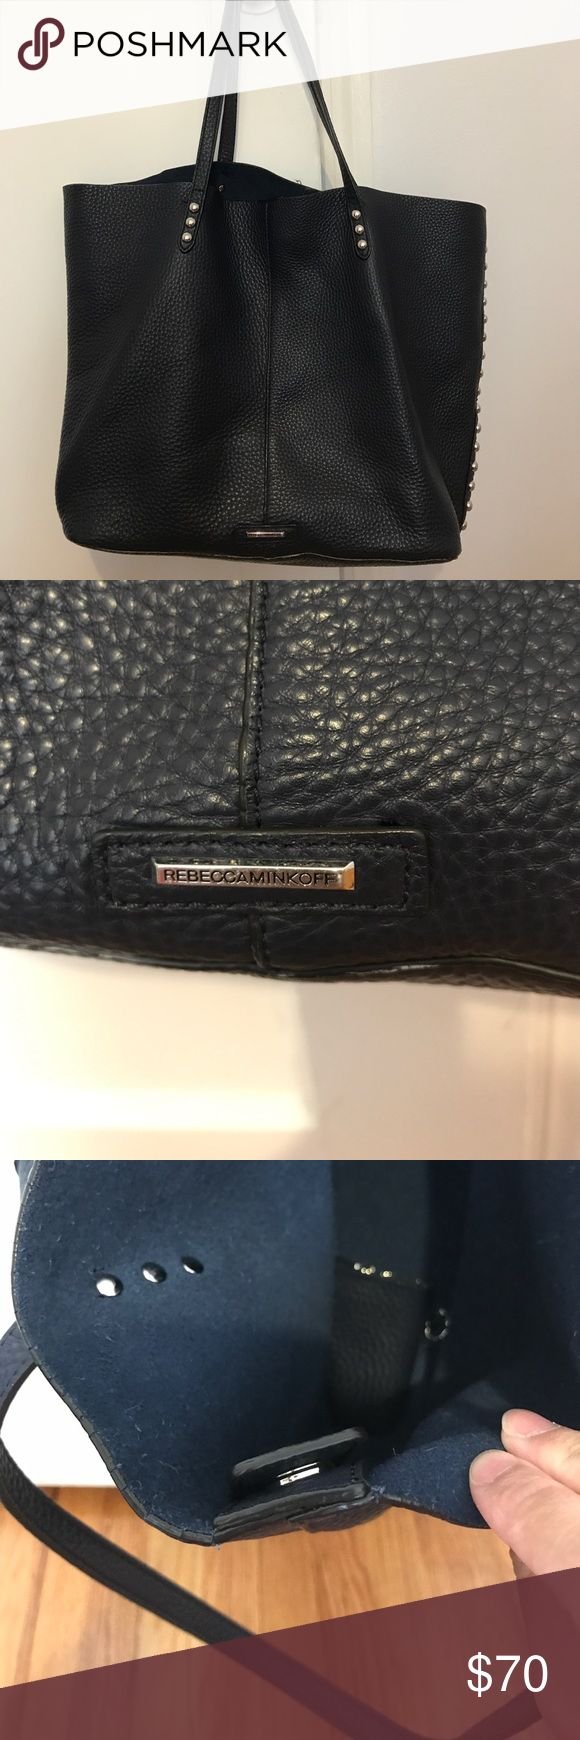 Rebecca Minkoff unlined Tote (large) - 100% authentic - it's navy blue not black (hard to tell in pic) - inside magnetic clasp is broken but can be easily fixed - no missing studs - minor scratches from normal wear - comes with a removable clutch inside - approx 12 x 15 inches Rebecca Minkoff Bags Totes